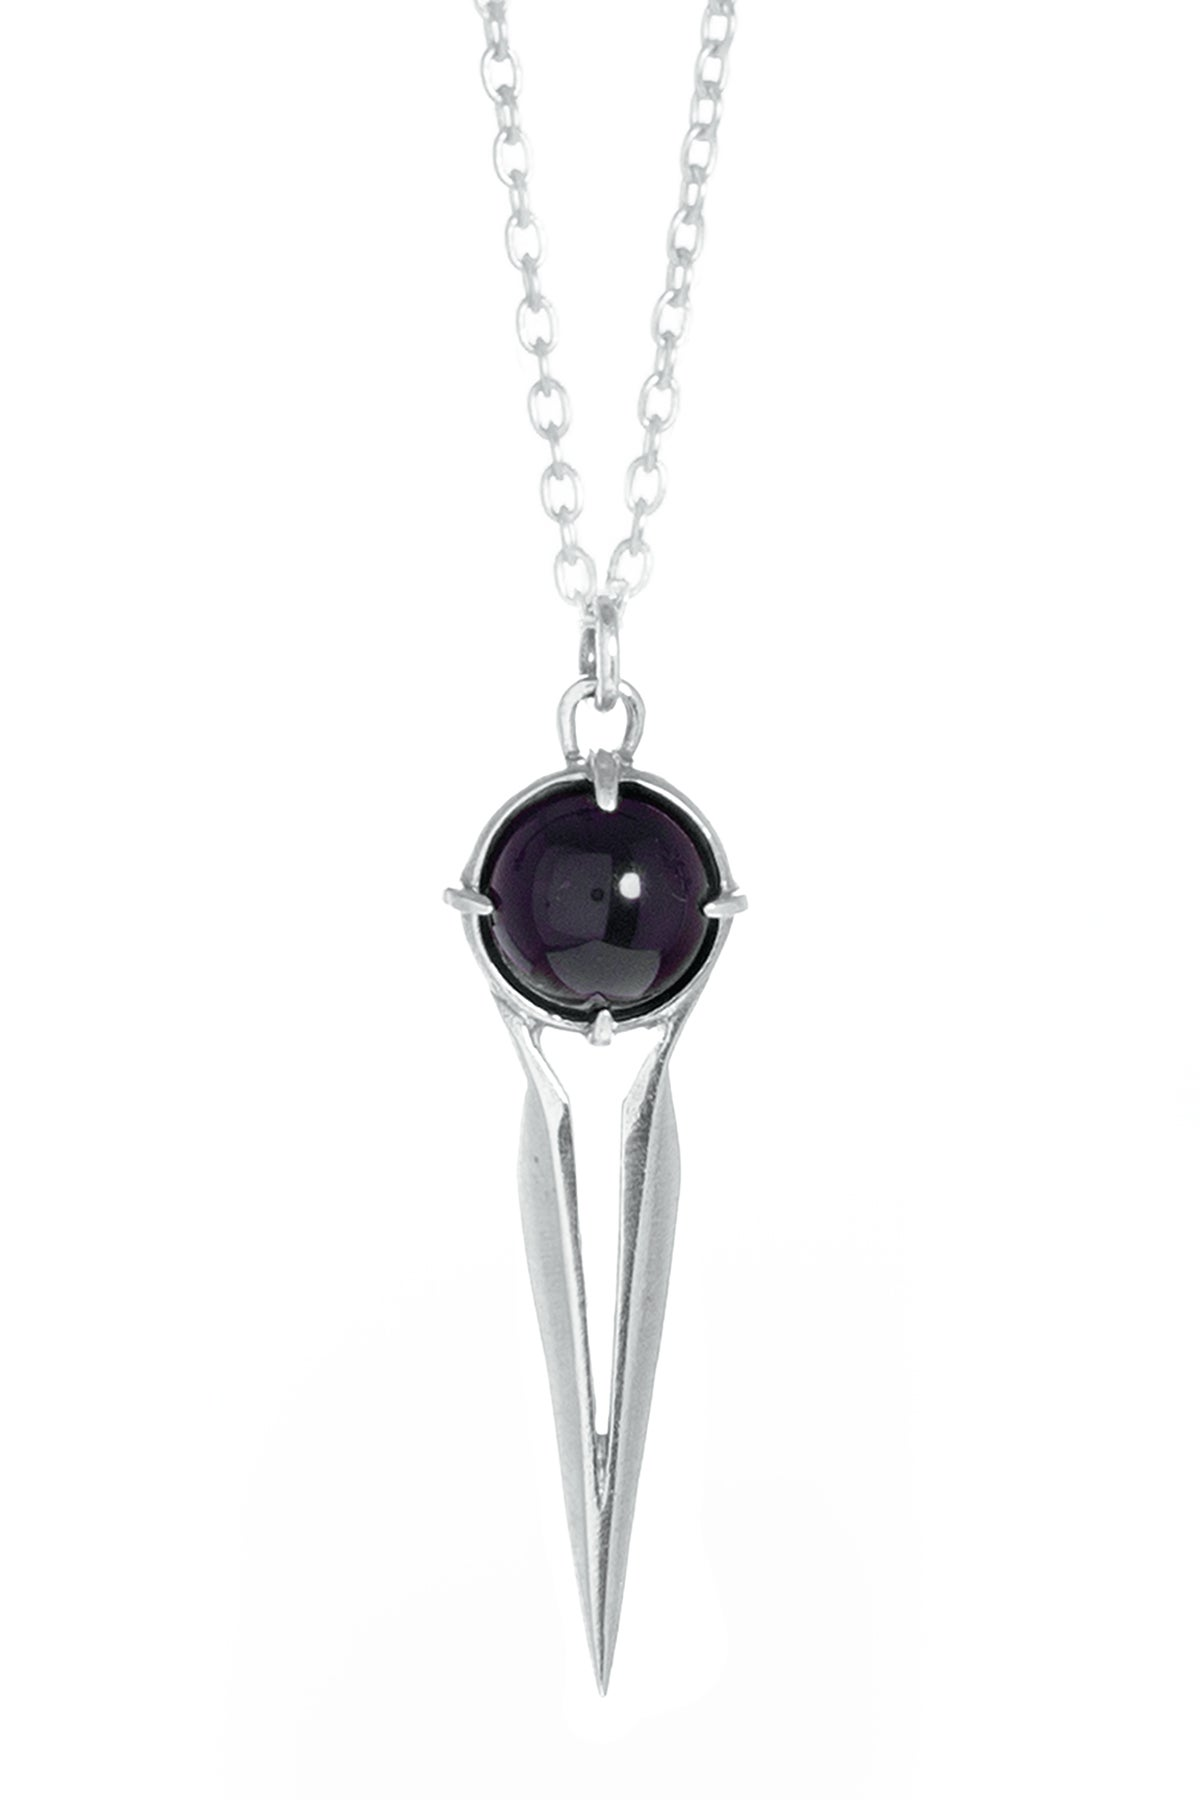 Image of ONYX FALCON NECKLACE - SILVER